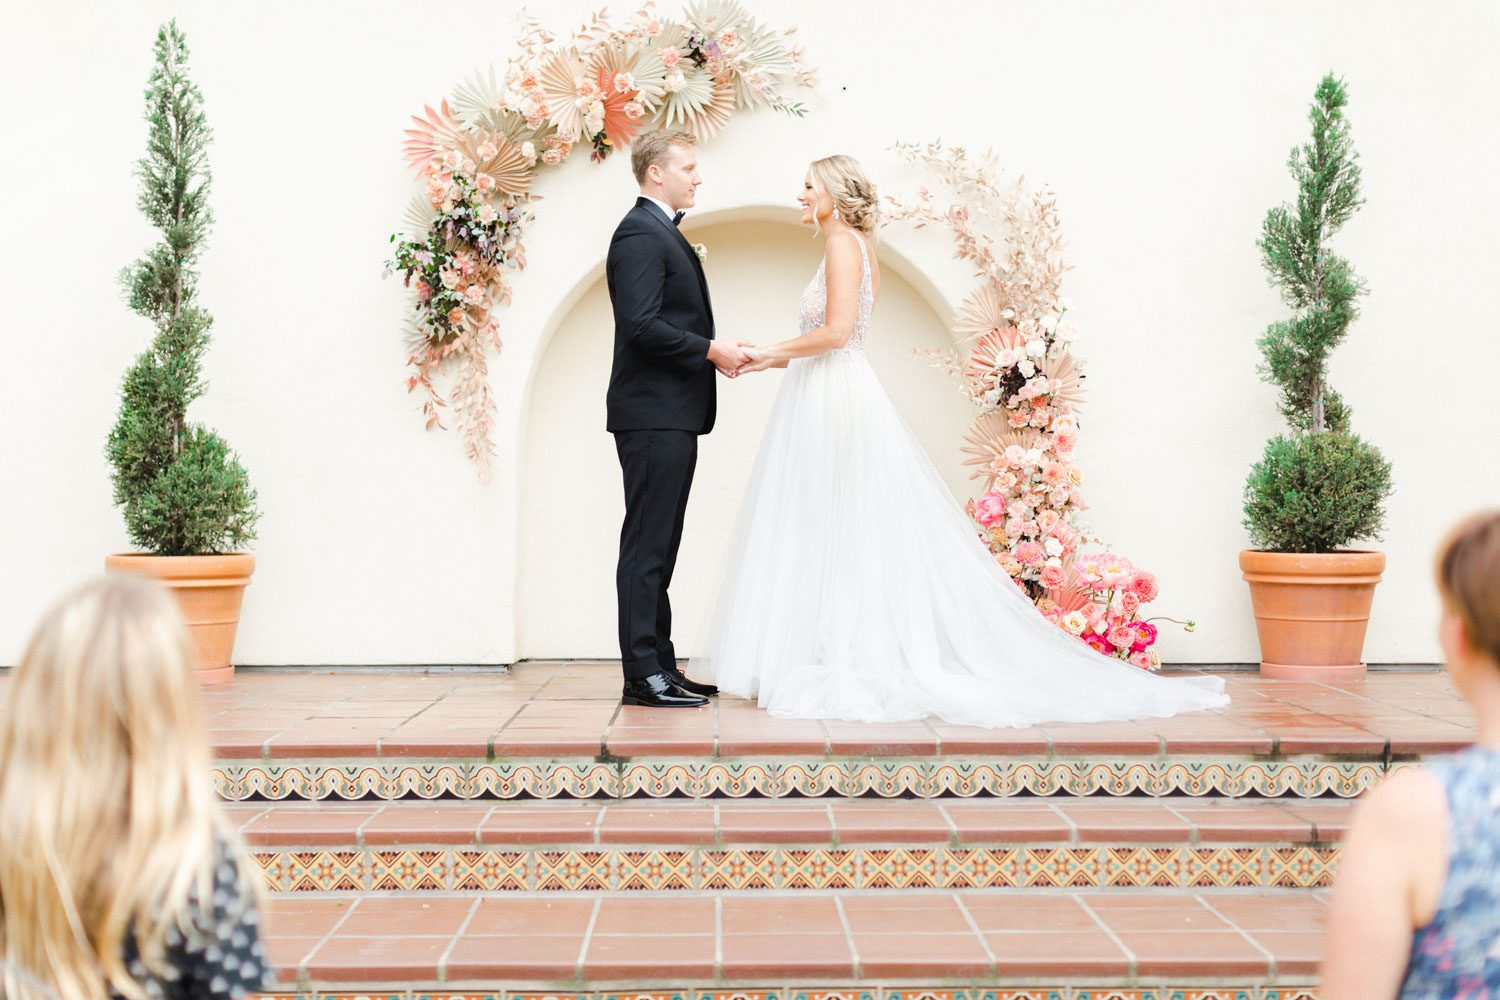 Ceremony vows in front of Pink peach and white floral installation over an archway with ghost chairs, Wedding at Estancia La Jolla, Cavin Elizabeth Photography